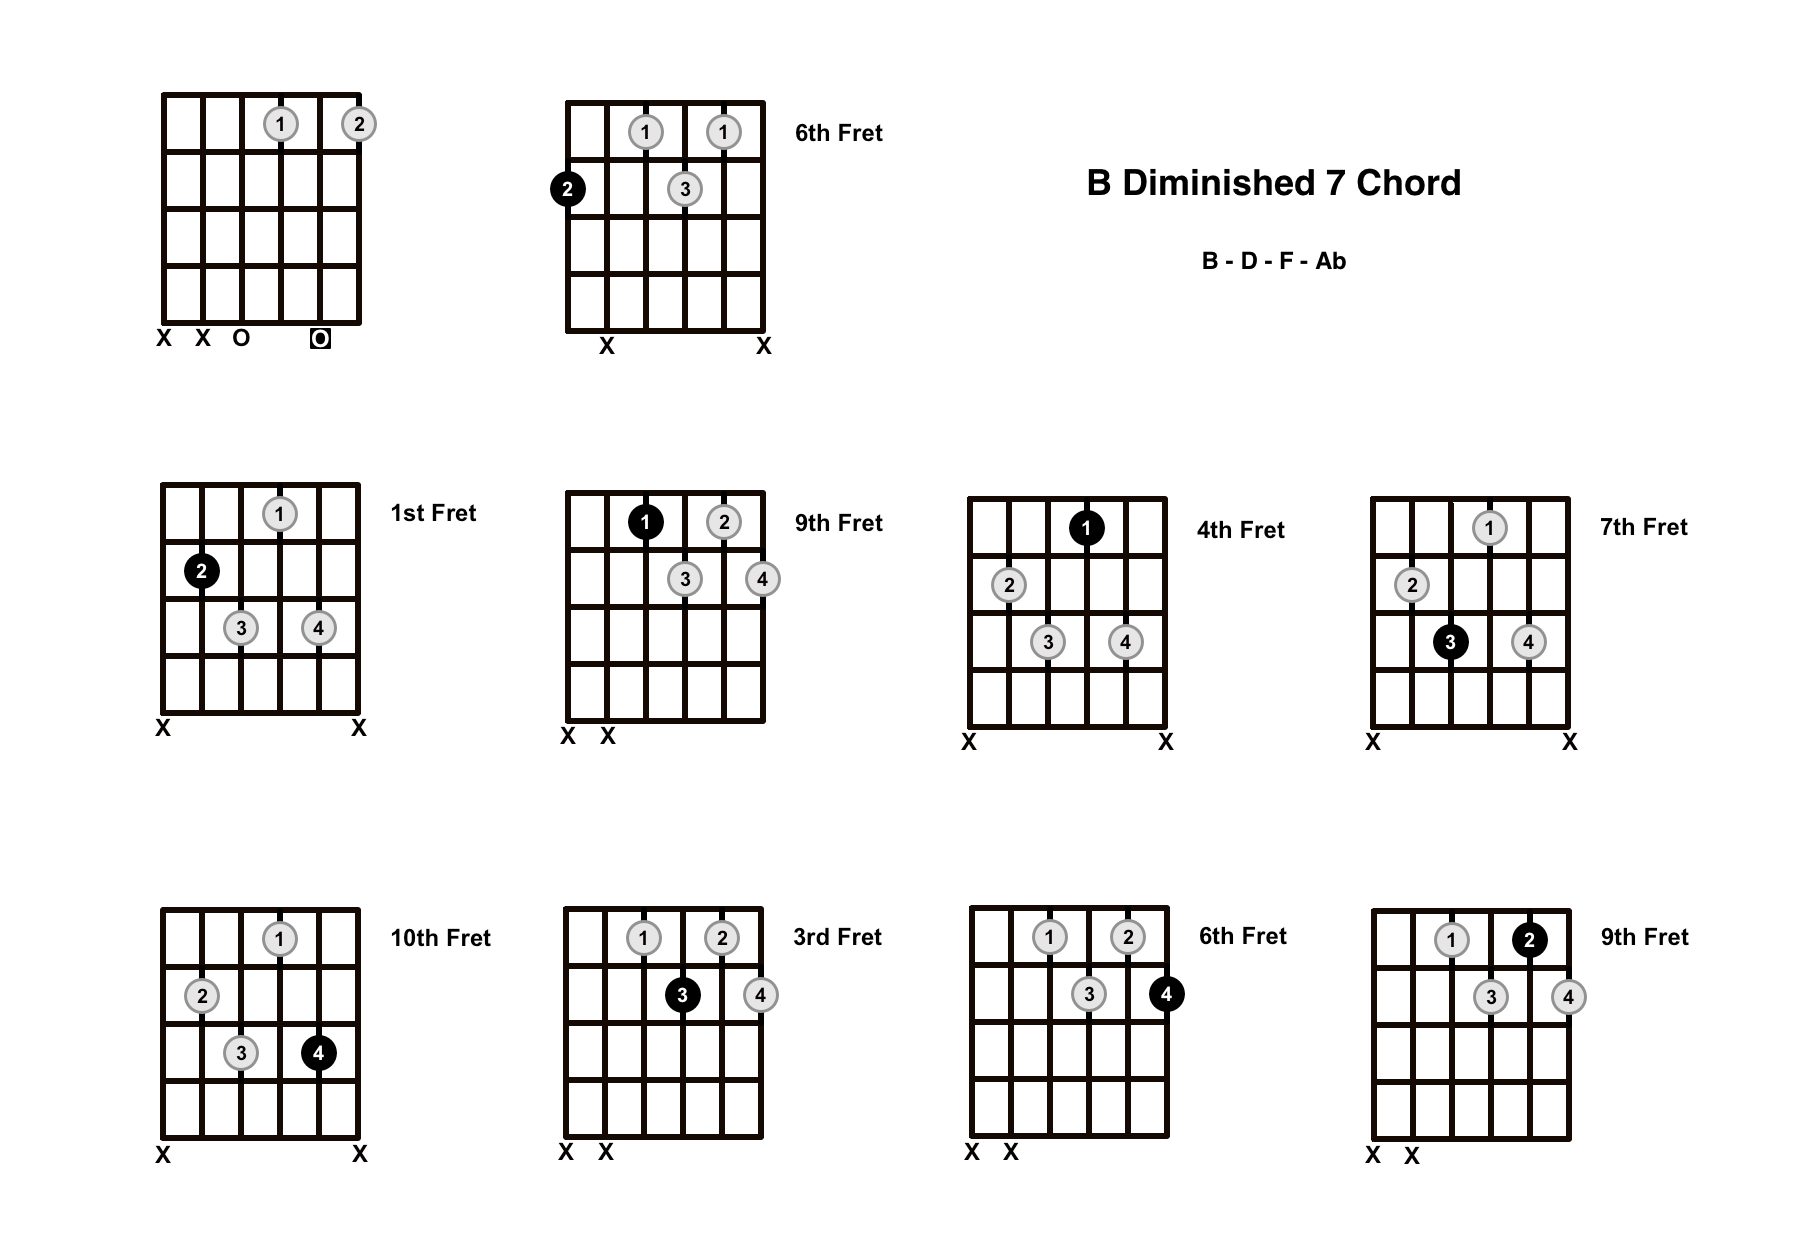 B Diminished 7 Chord On The Guitar (B Dim 7) – Diagrams, Finger Positions and Theory